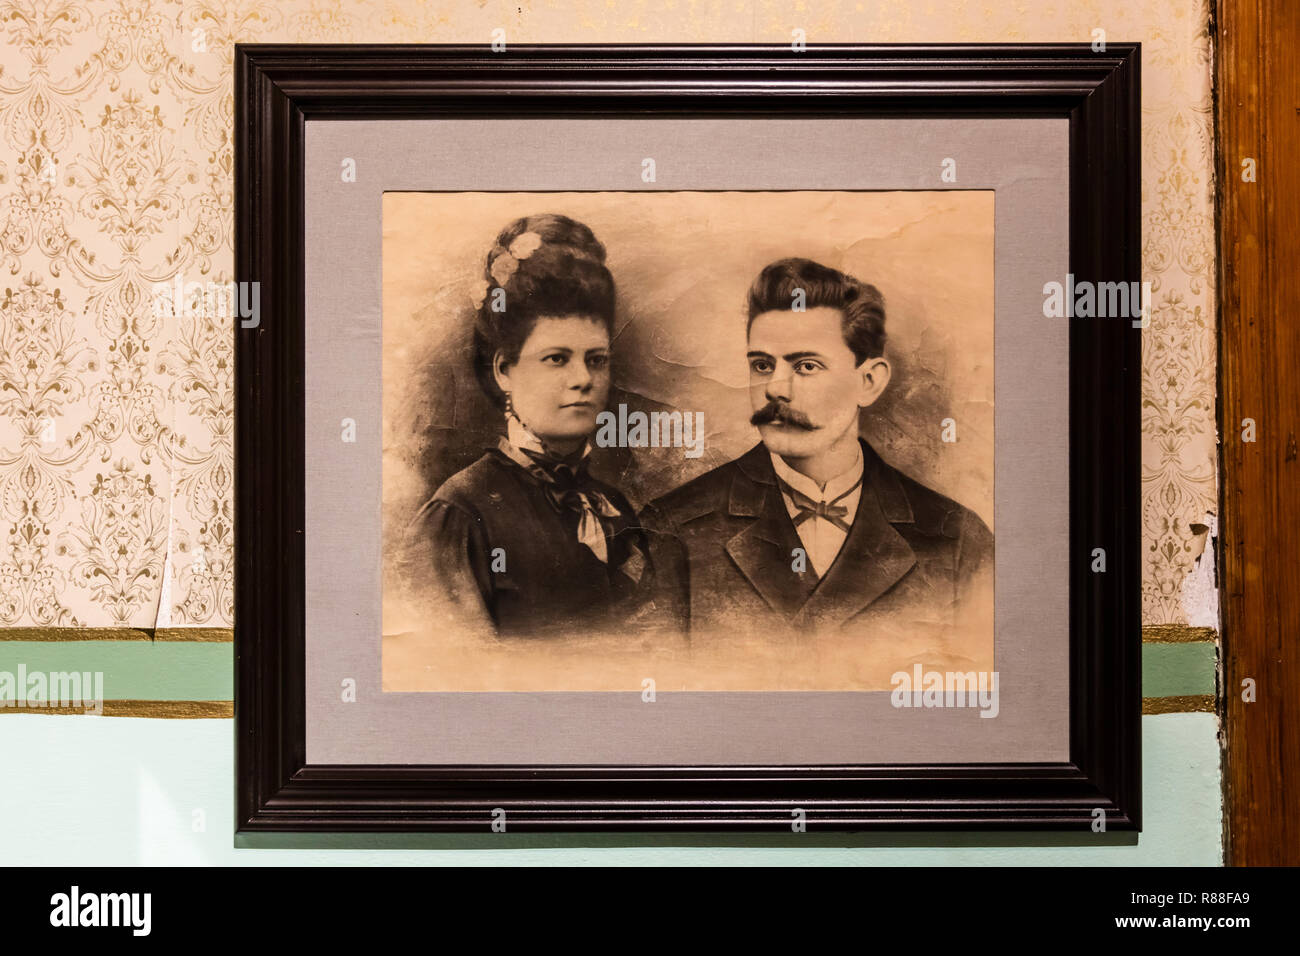 A historical photograph at the DIEGO RIVERA MUSEUM located in his childhood home - GUANAJUATO, MEXICO - Stock Image